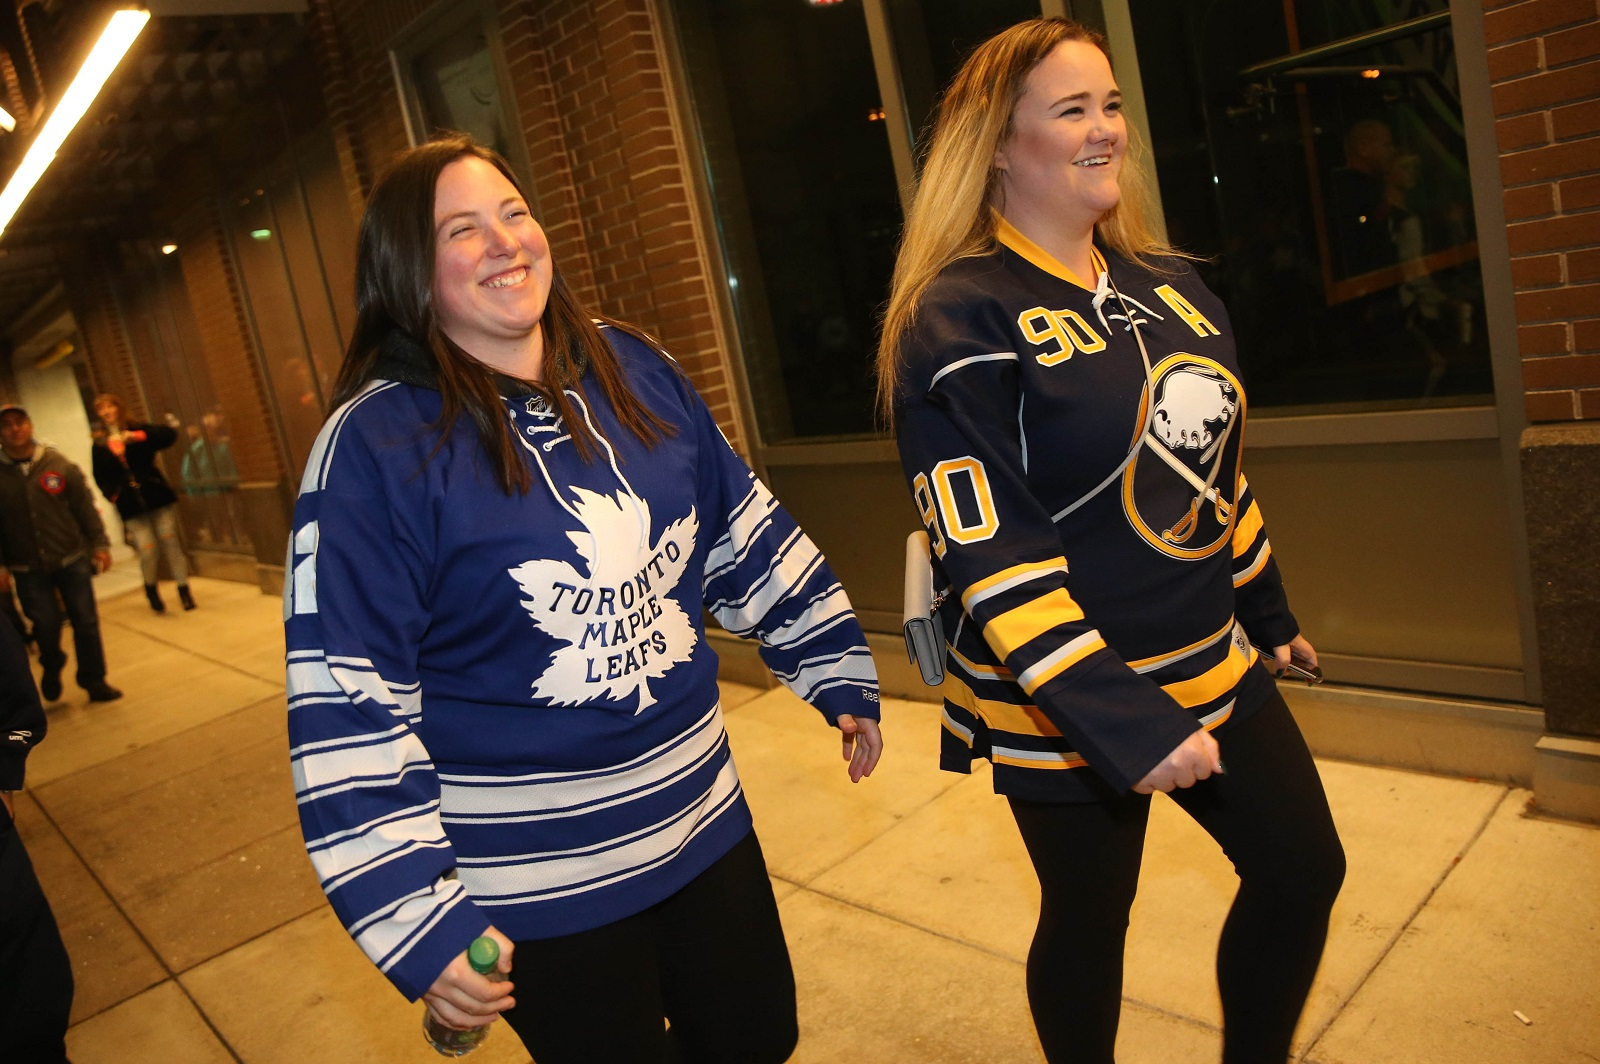 Lynsey Bedrosian, left, of Toronto, brought her friend Laura Gaca, of Toronto, for her birthday, but they rooted for different teams. (Sharon Cantillon/Buffalo News)